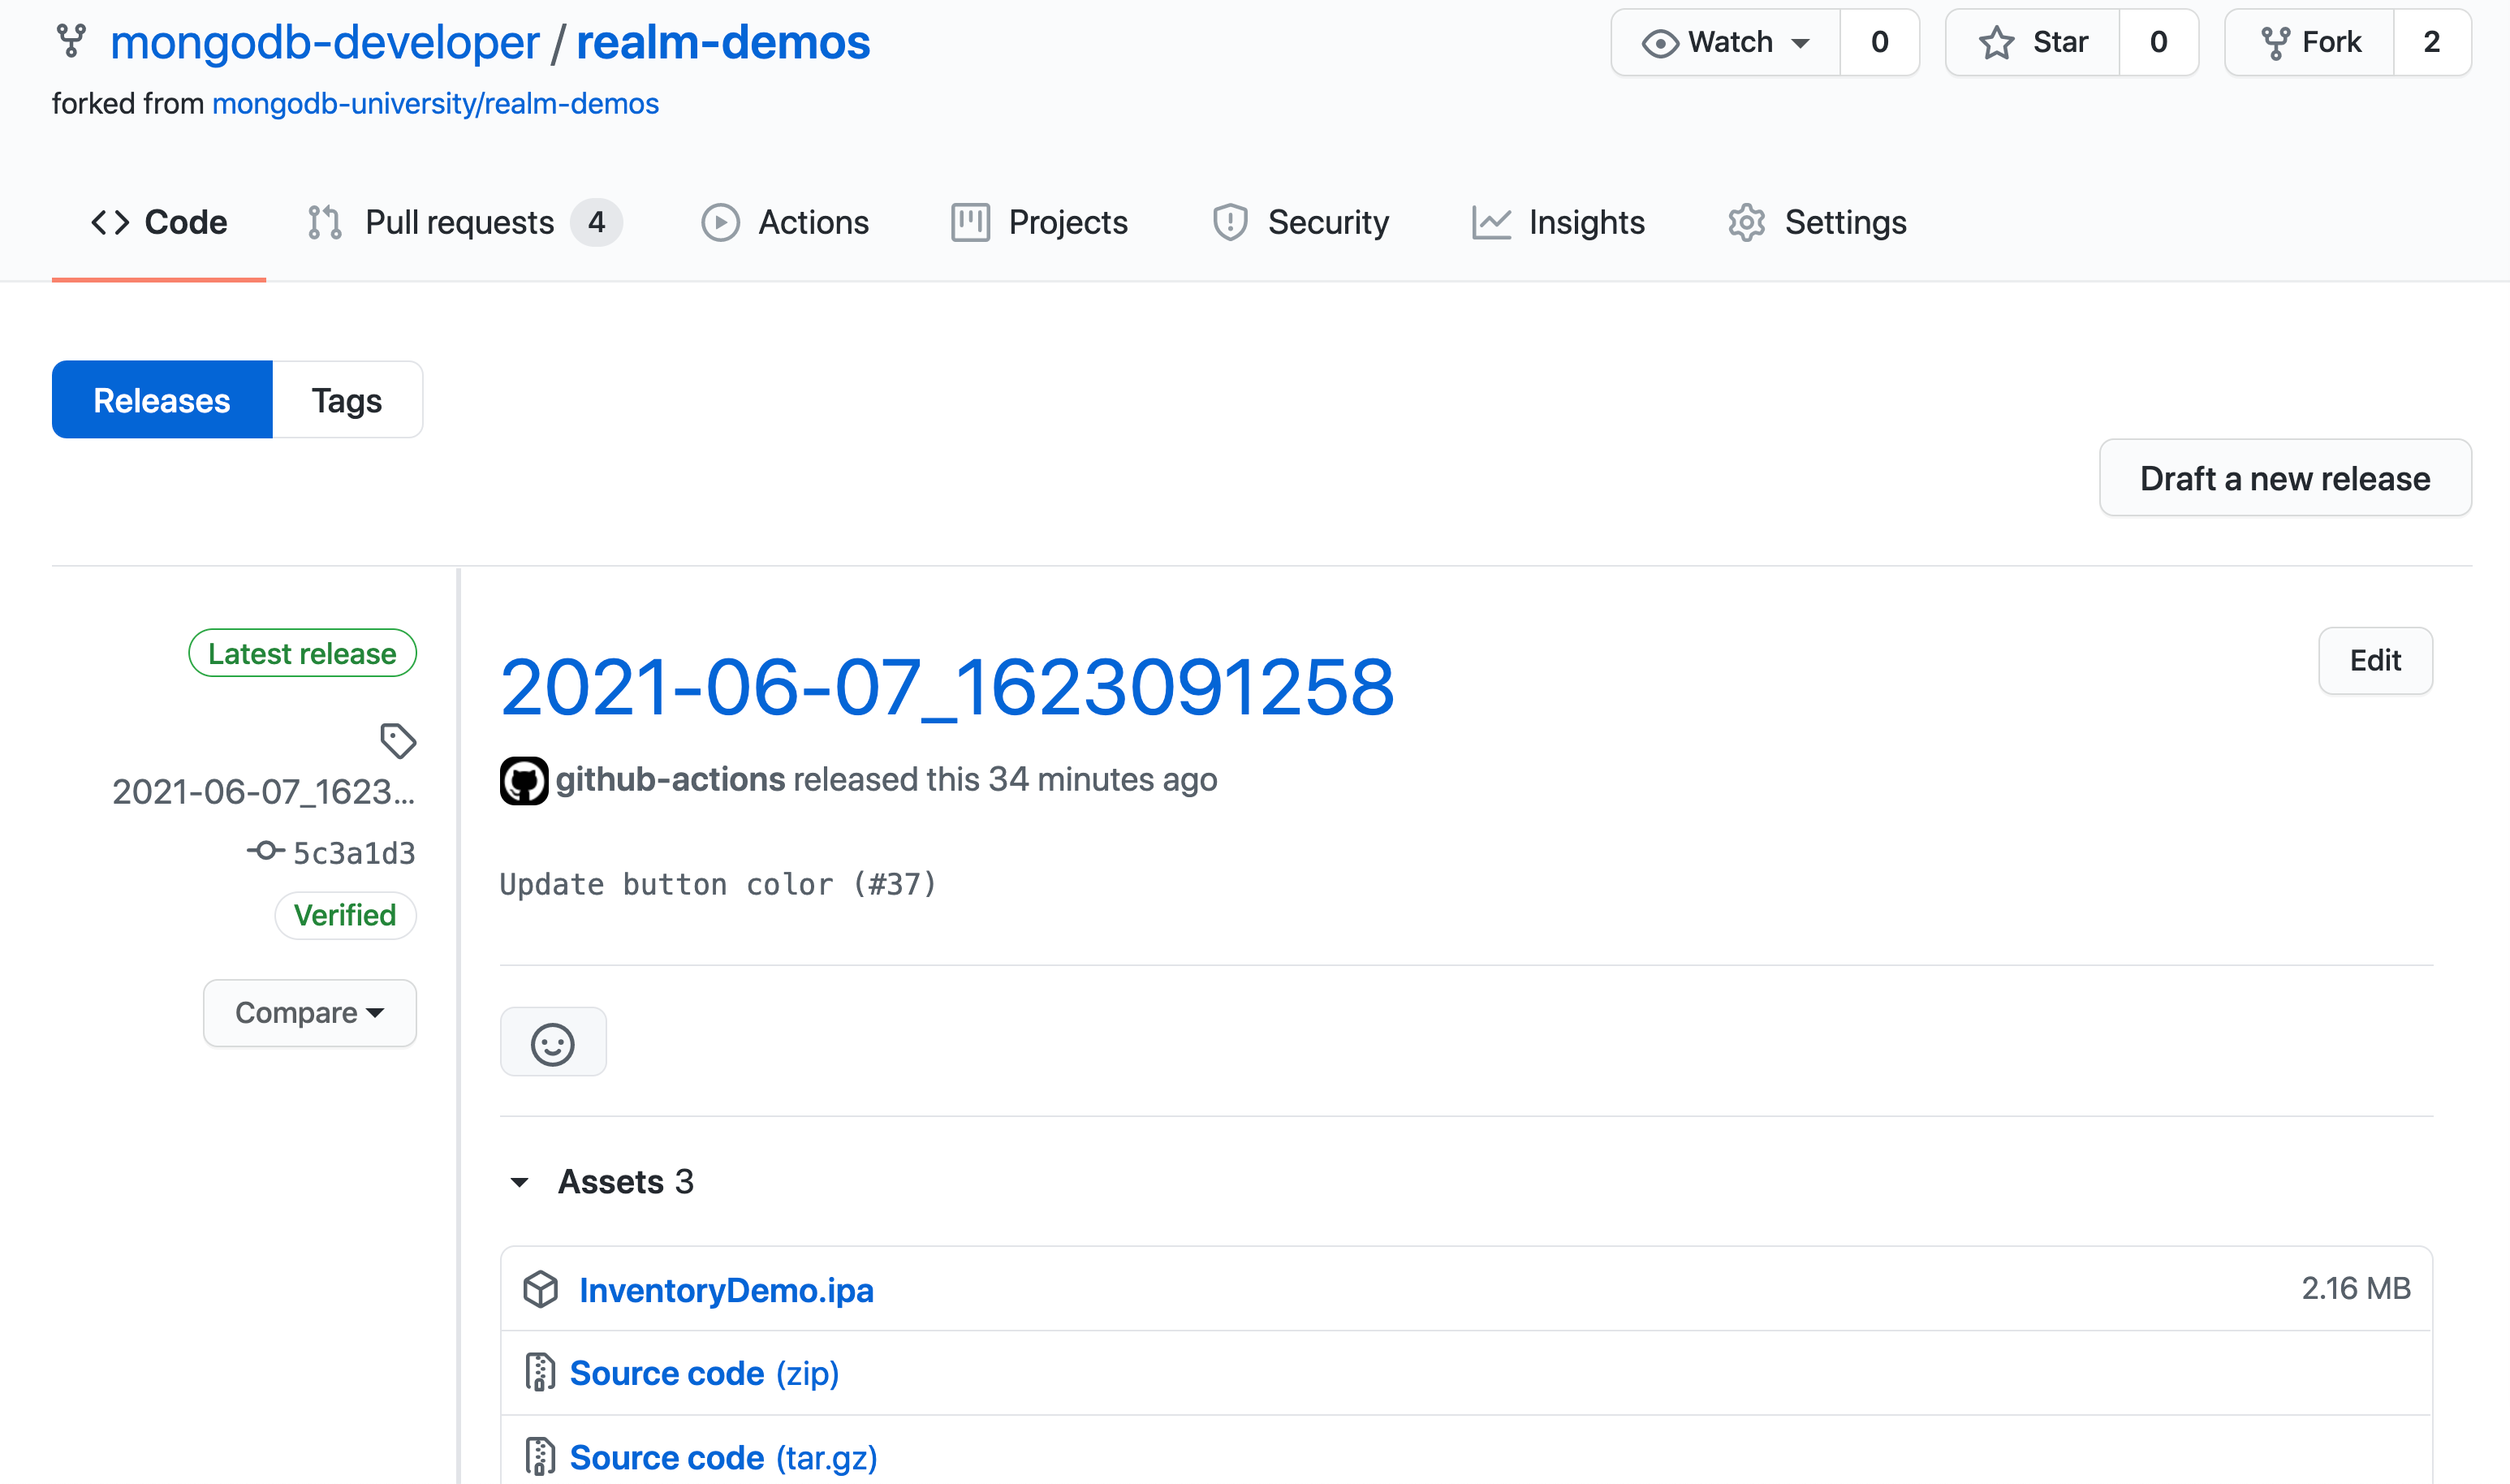 Screenshot of a GitHub release that contains a mobile app archive